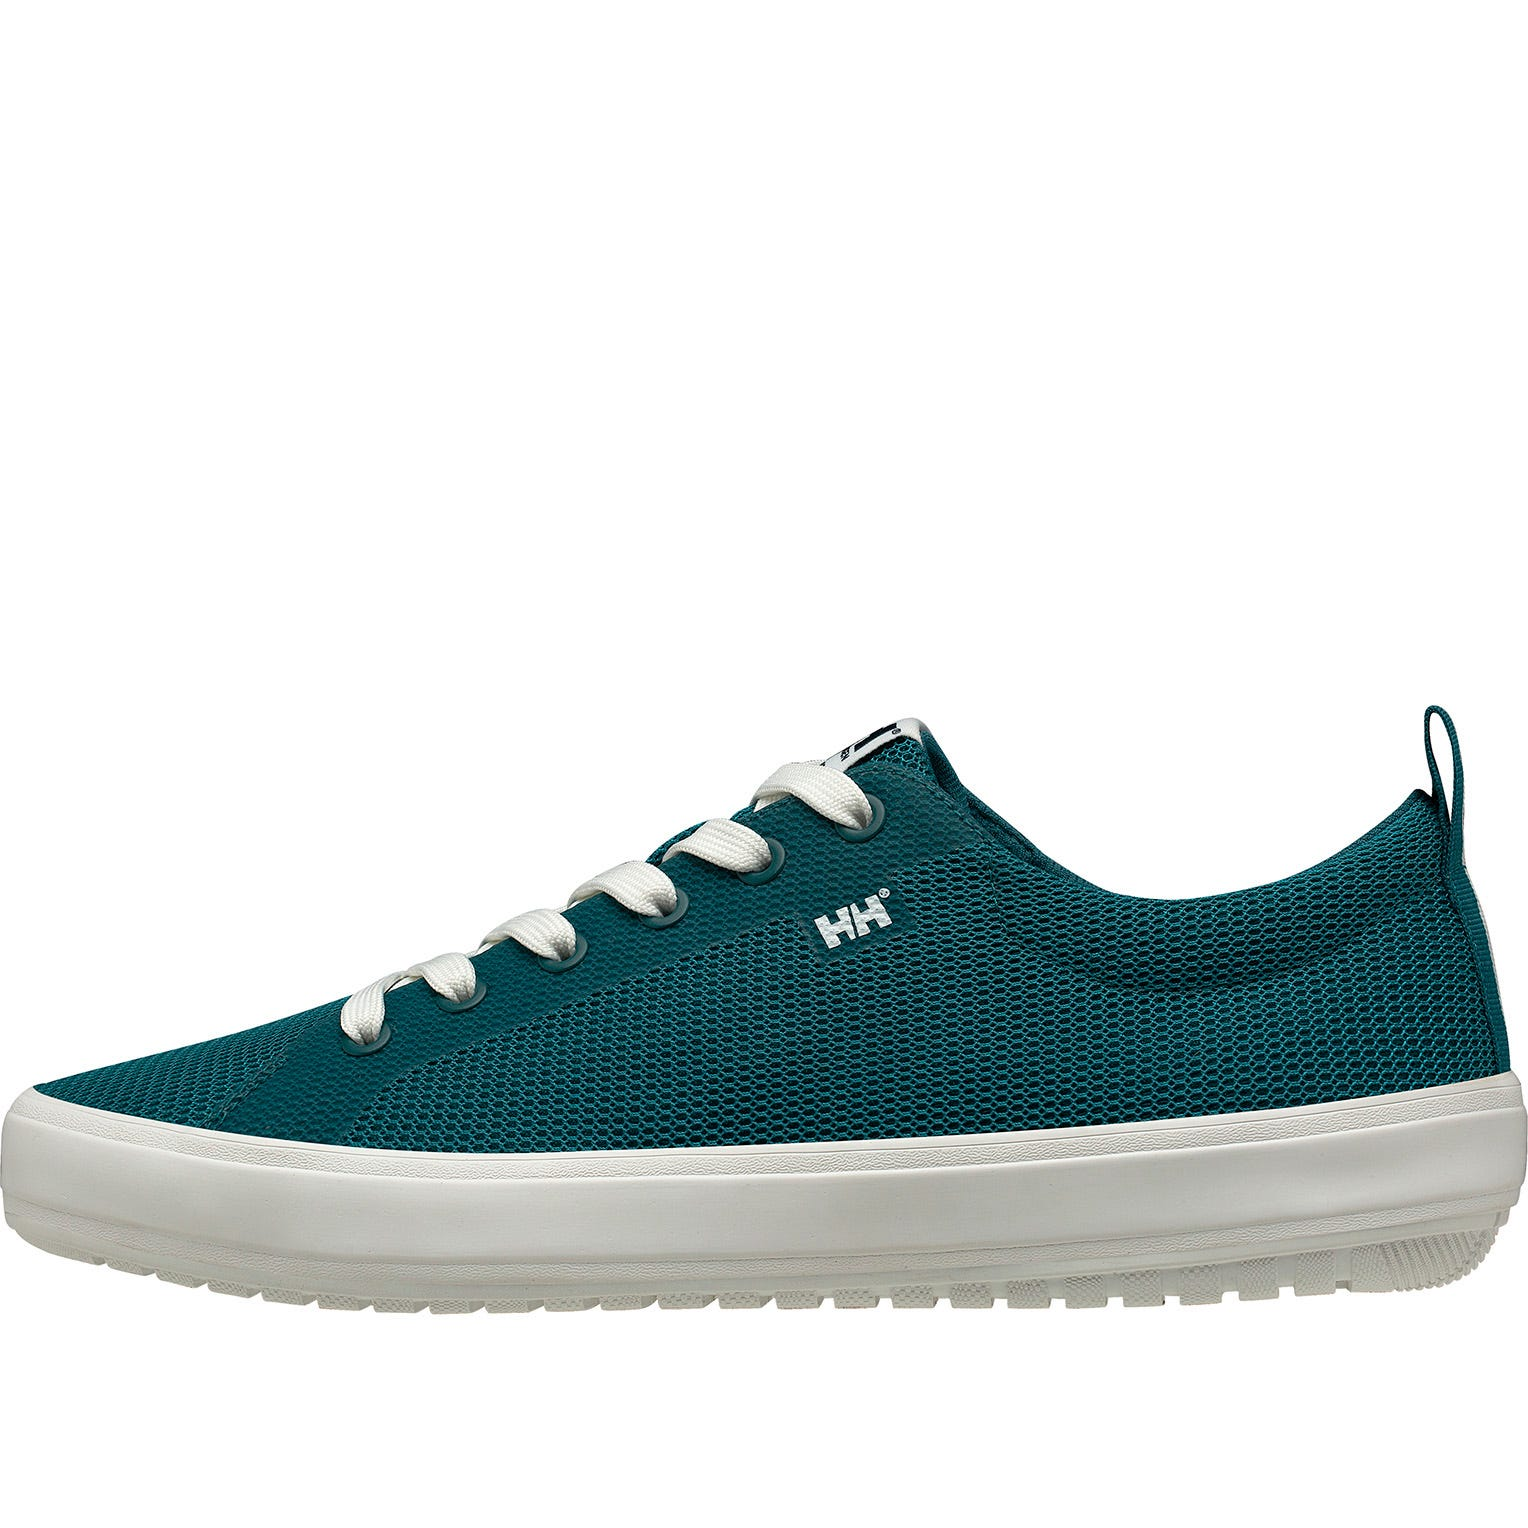 Scurry V3   Summer Sneakers for Casual